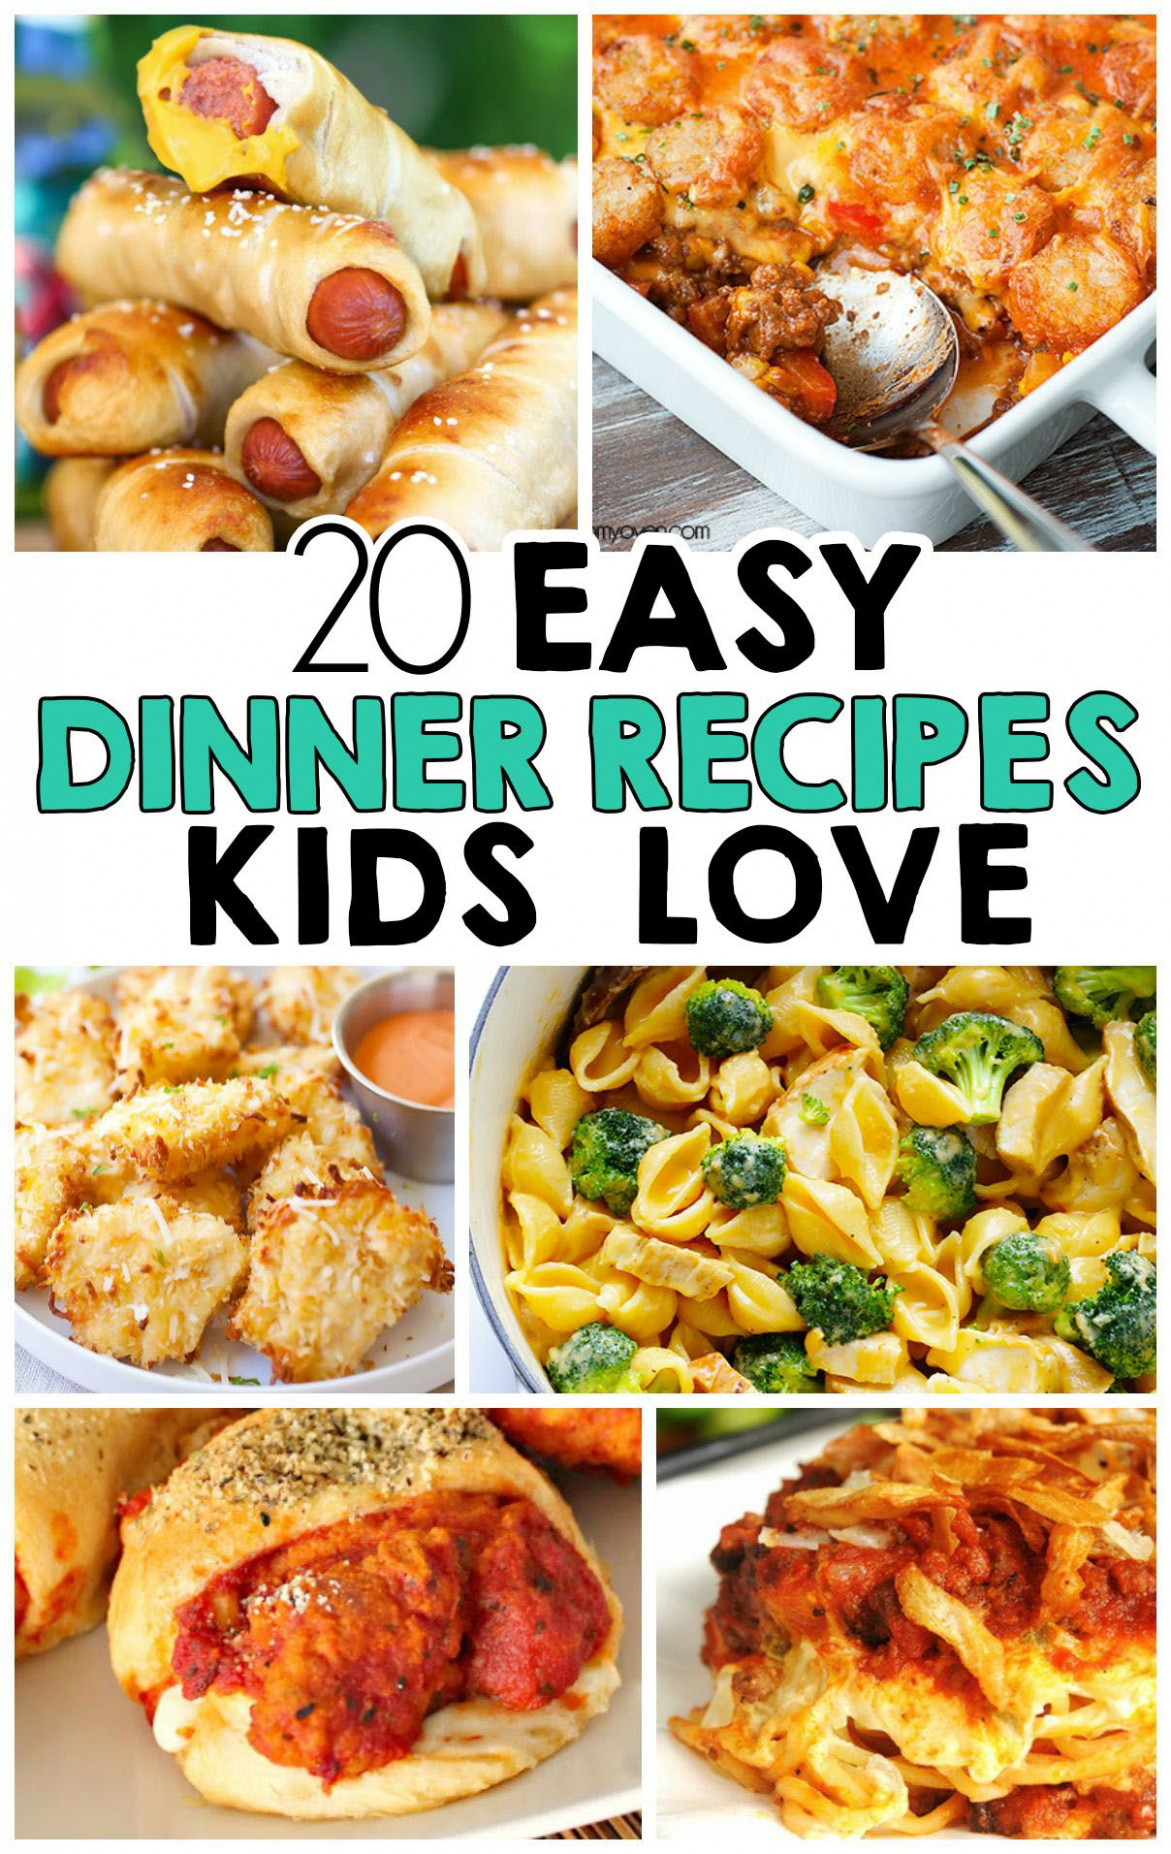 11 Easy Dinner Recipes That Kids Love | Kid-Friendly Recipes ..